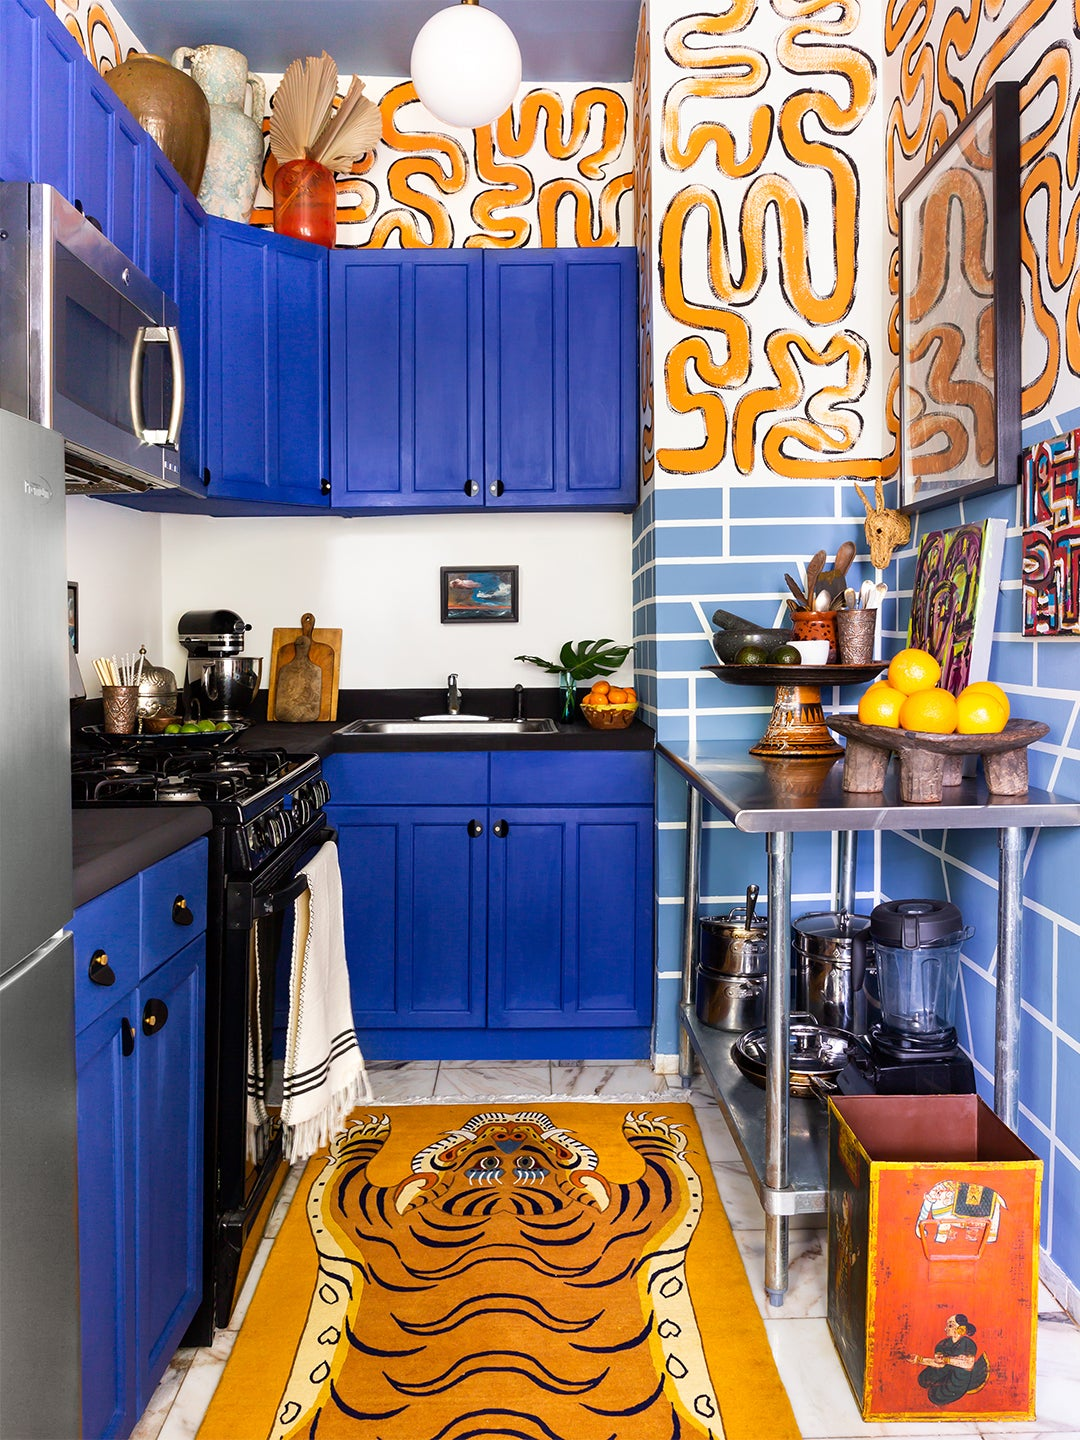 cobalt blue kitchen cabinets with orange wall mural